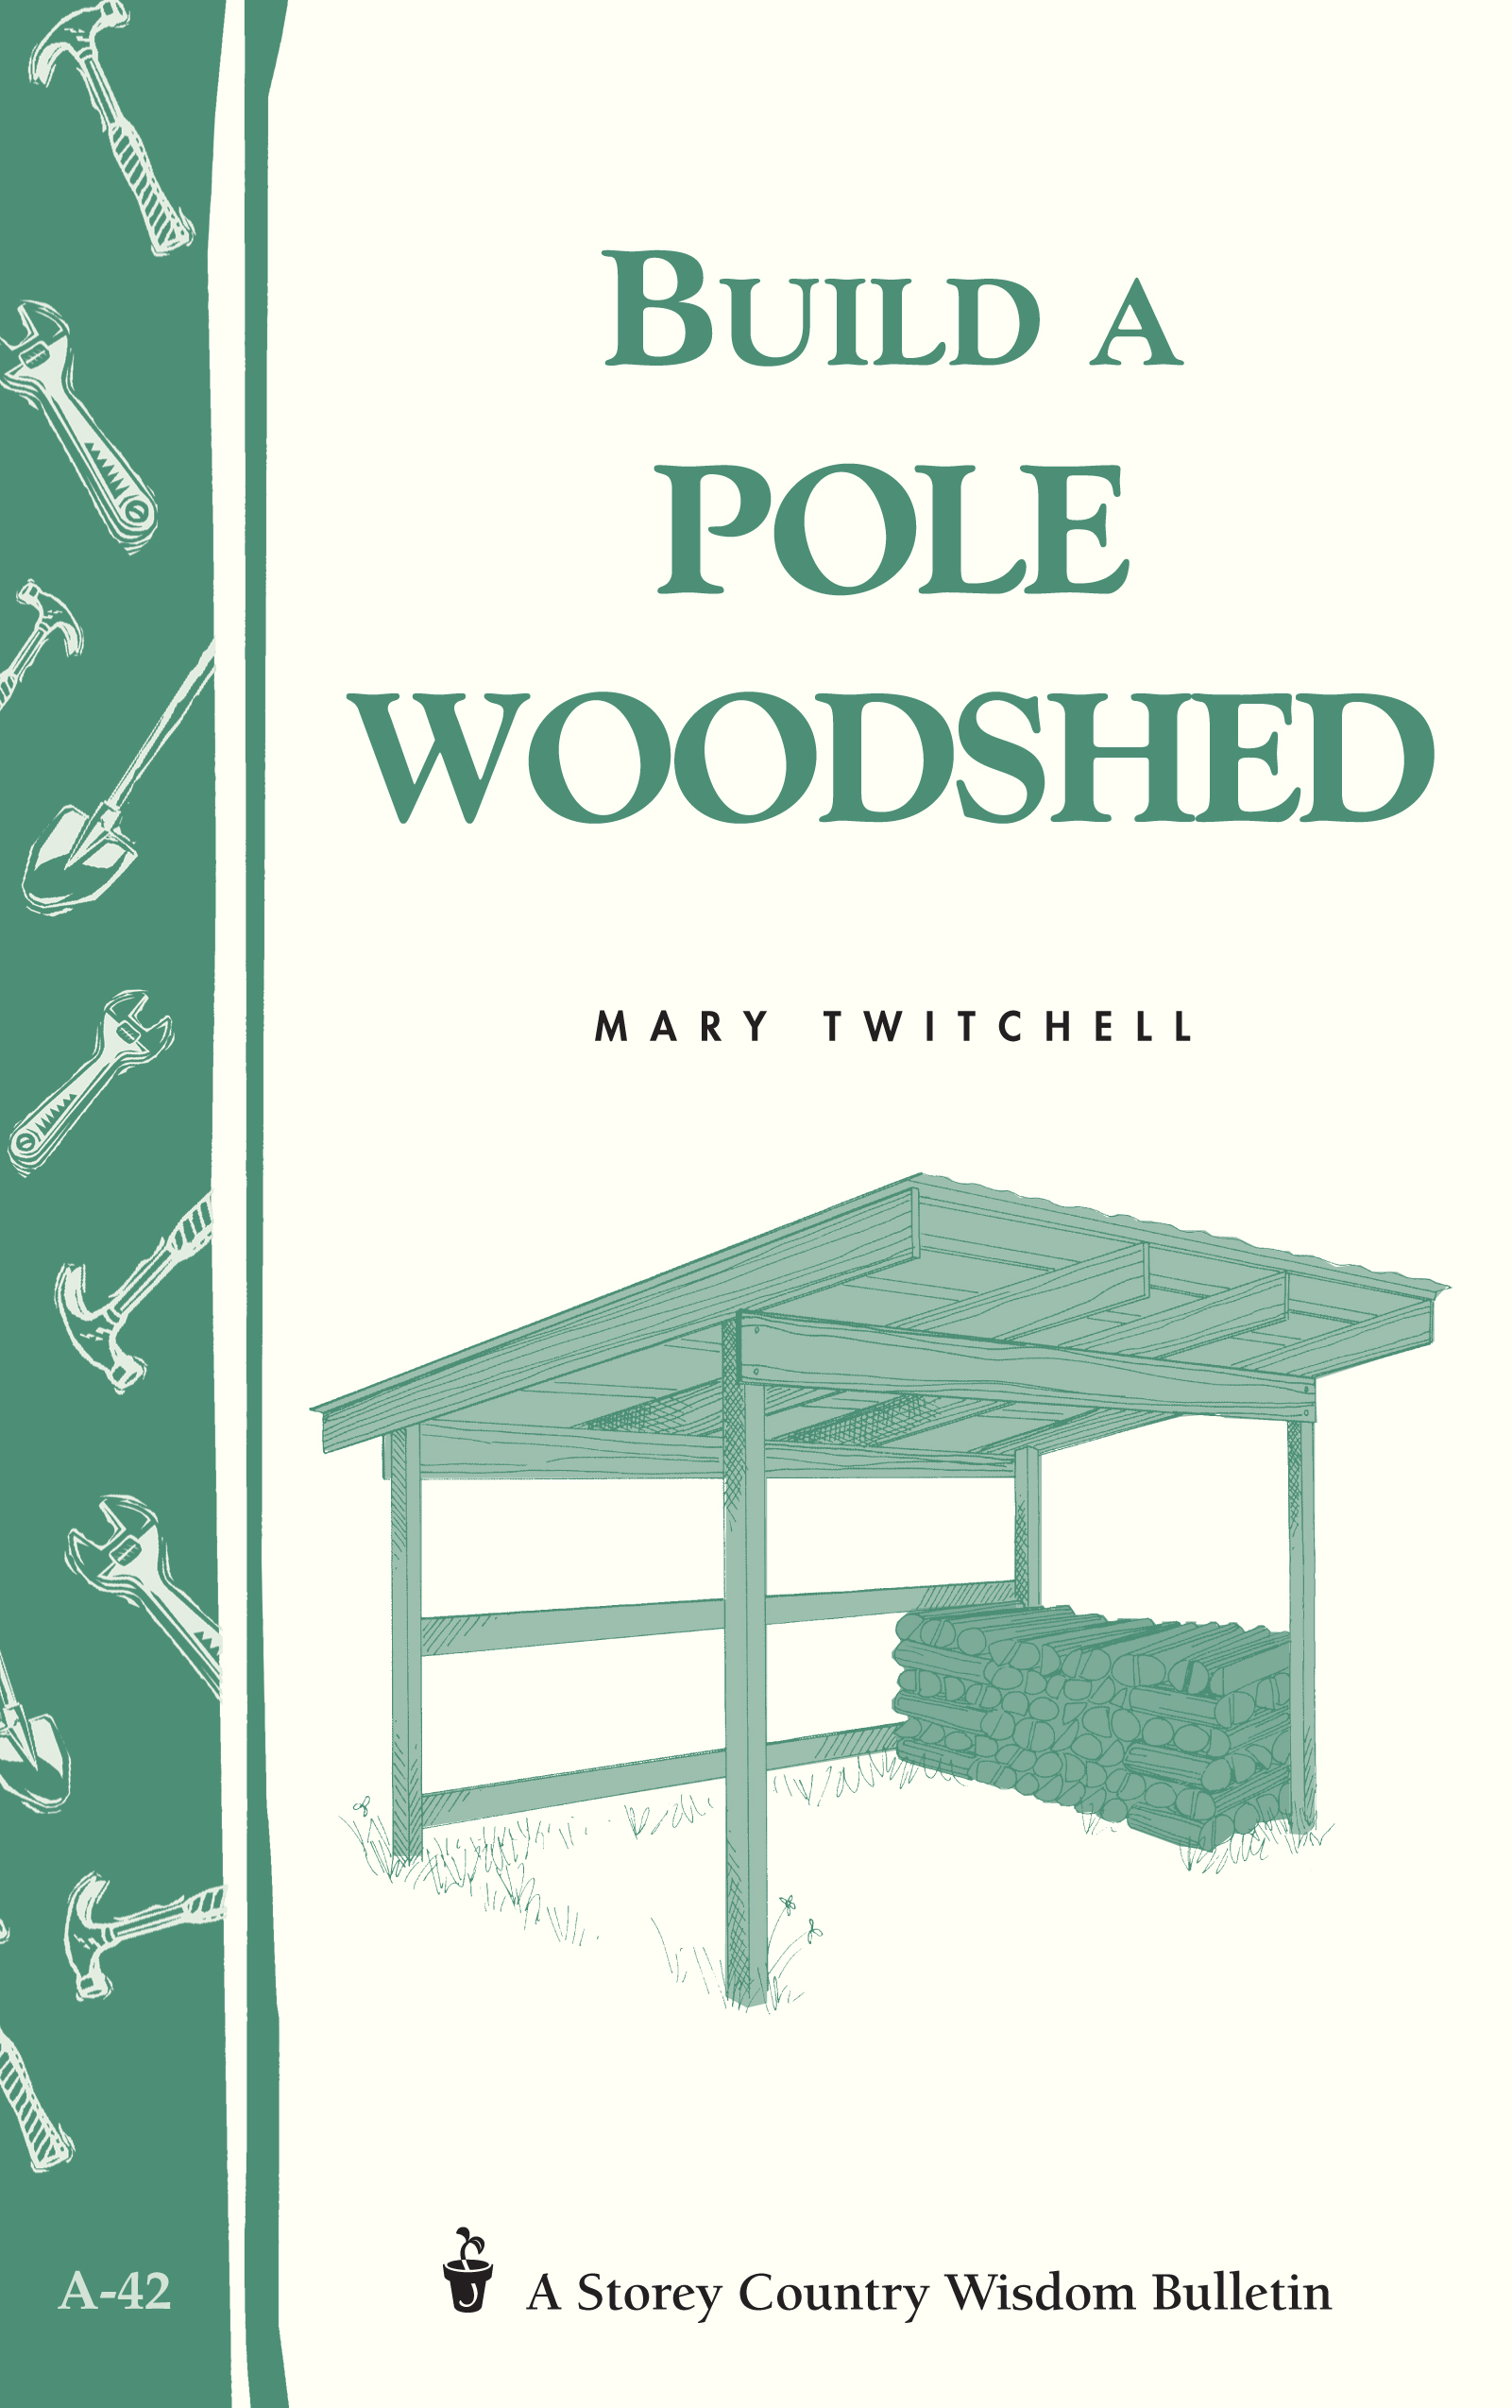 Build a Pole Woodshed Storey Country Wisdom Bulletin A-42 - Mary Twitchell